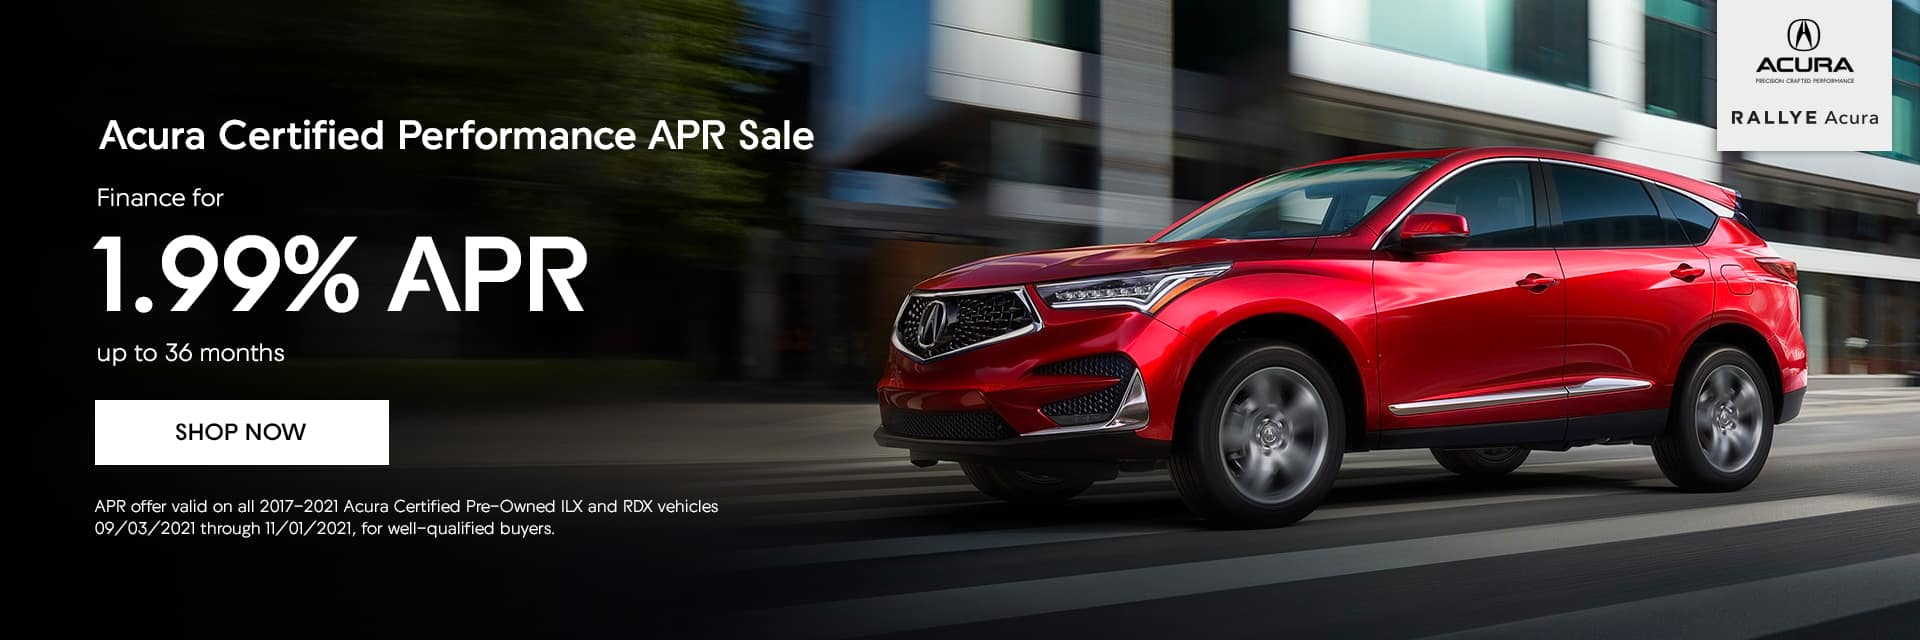 Acura Certified Performance APR Sale, Finance for 1.99% APR up to 36 months